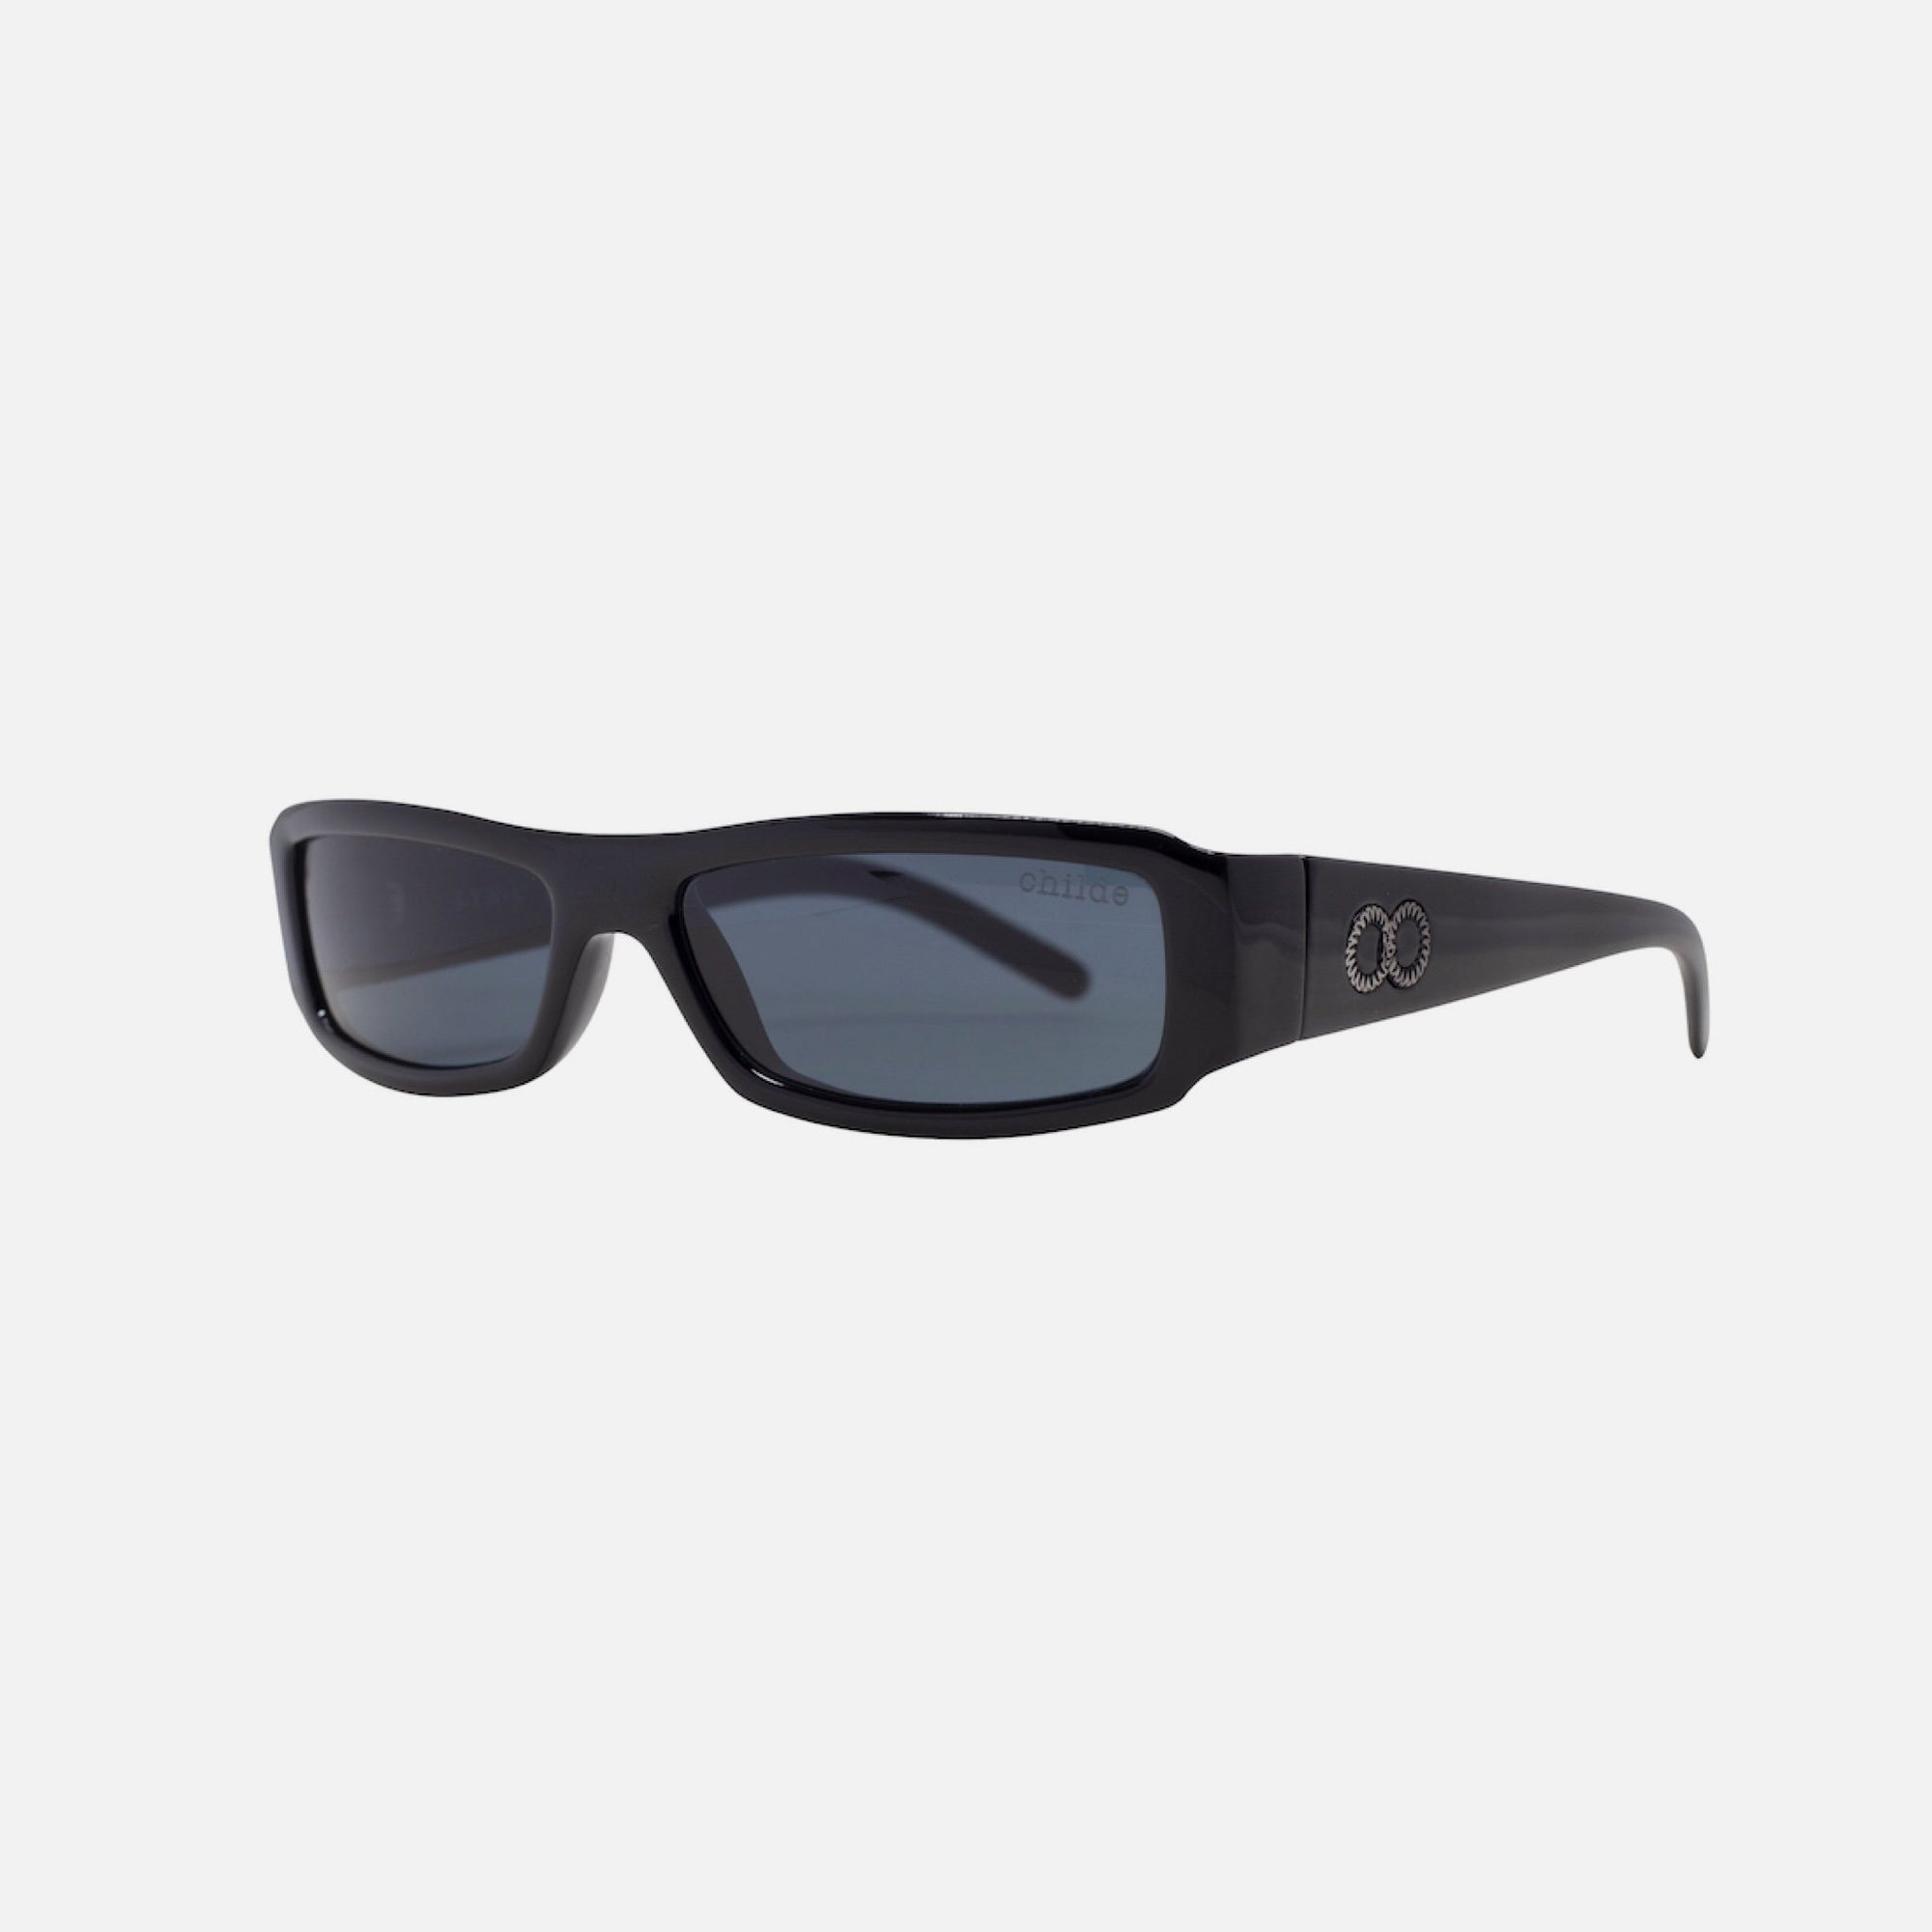 LYRIC Gloss Black | Grey Lens